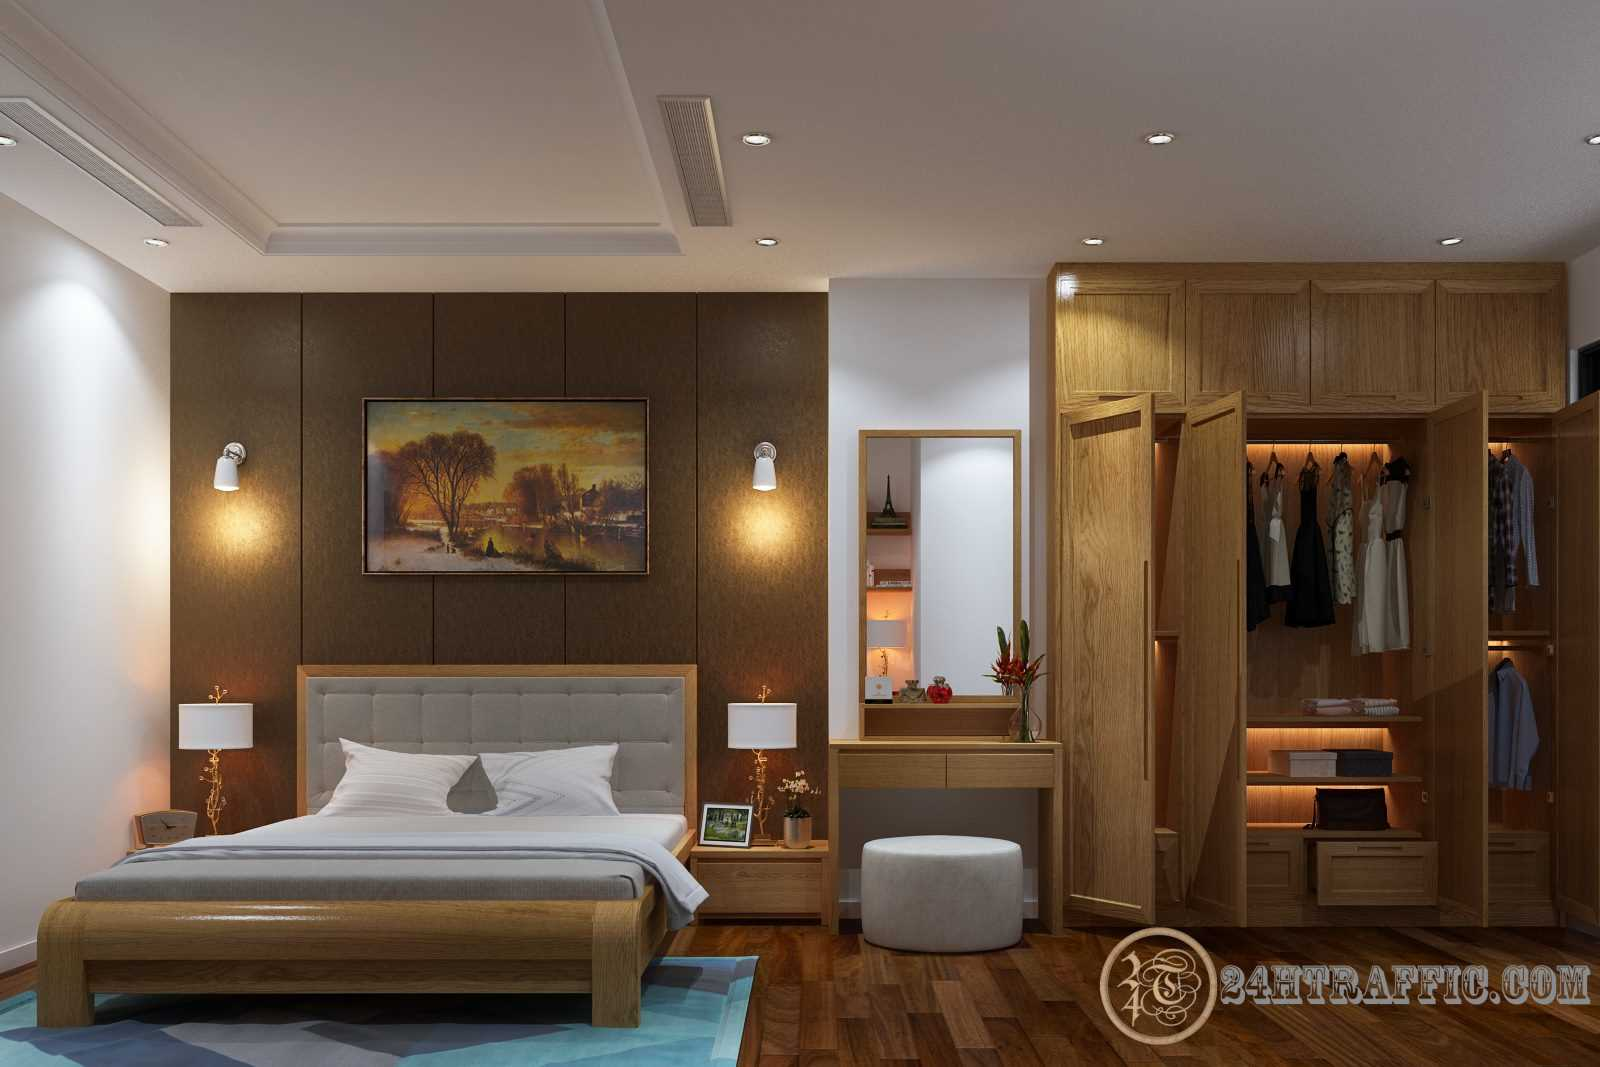 3dSkyHost: 3D Interior Scenes File 3dsmax Model Bedroom 42